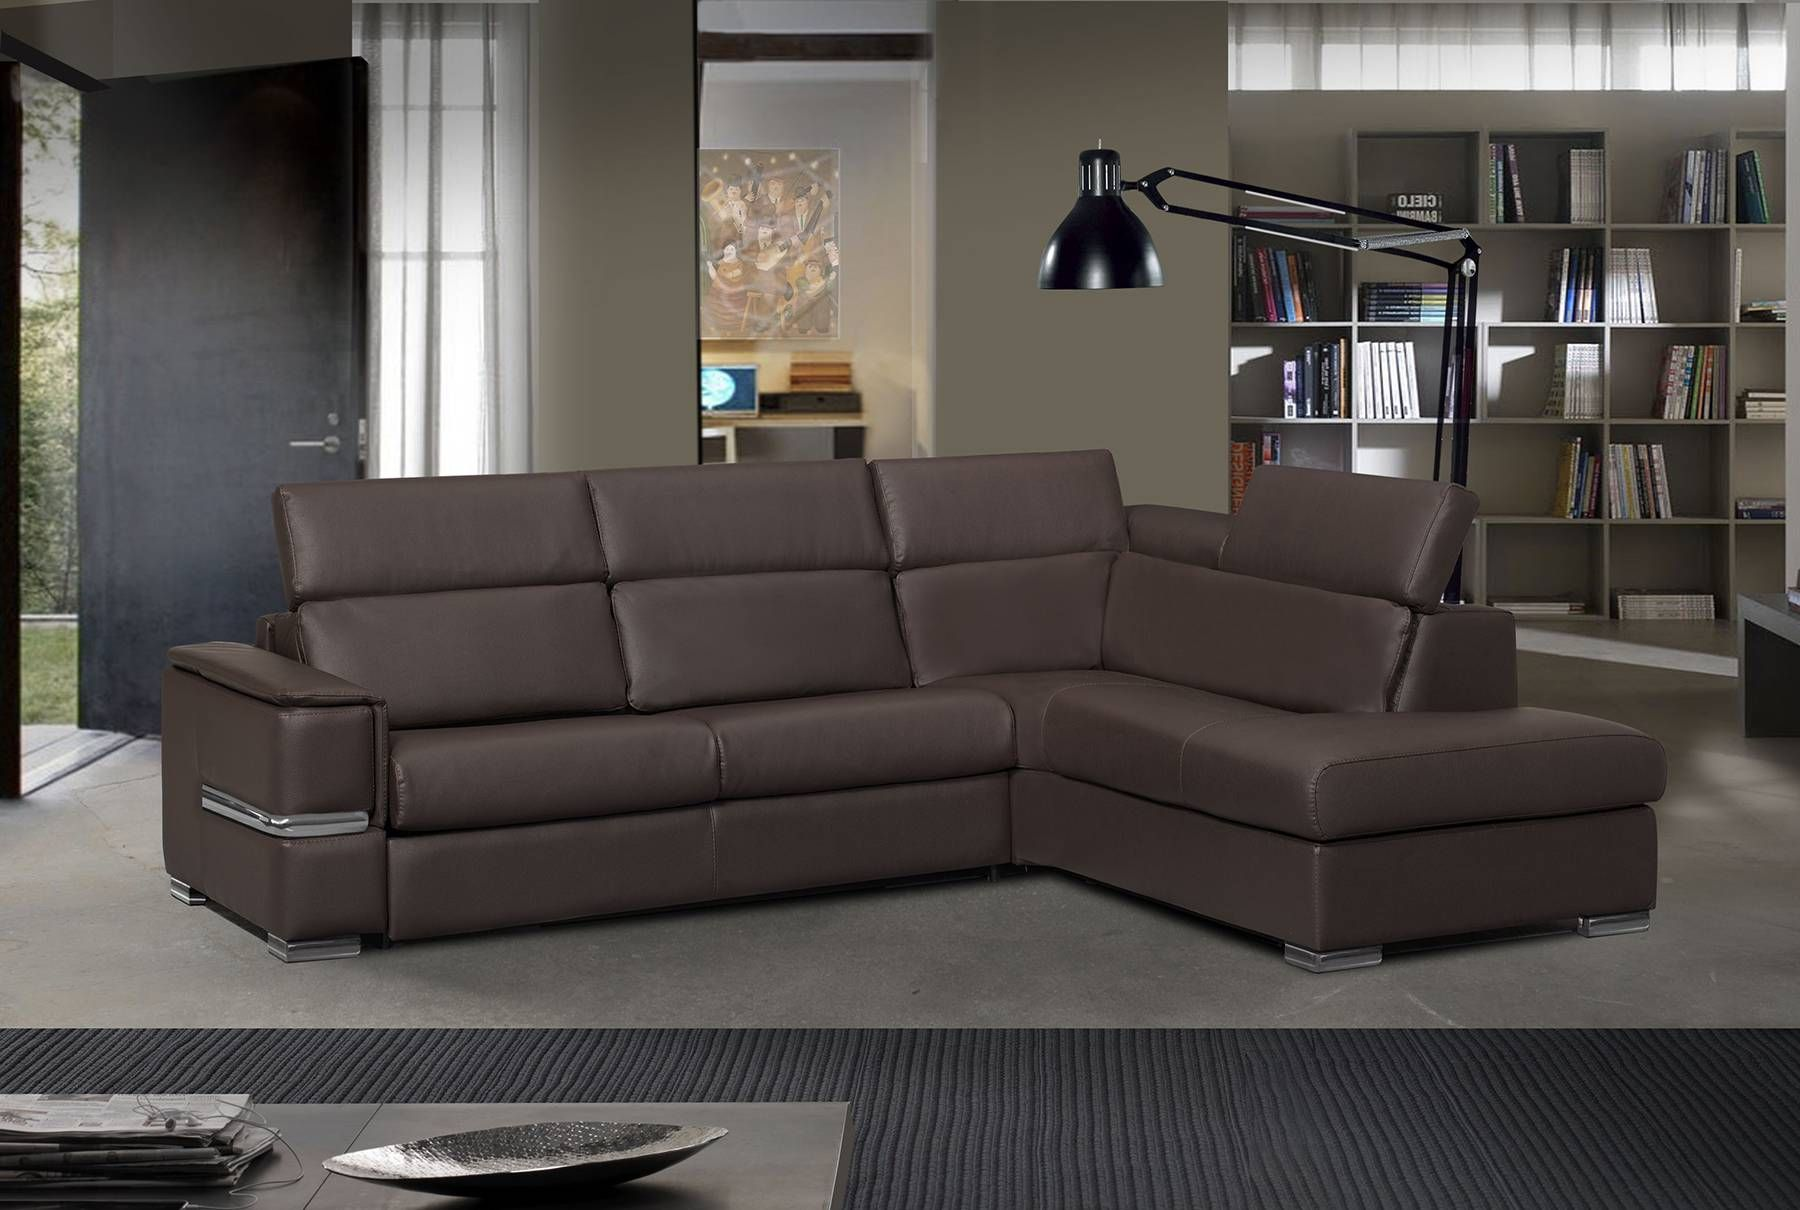 Contemporary Italian sectional sofa in dark brown stitched leather